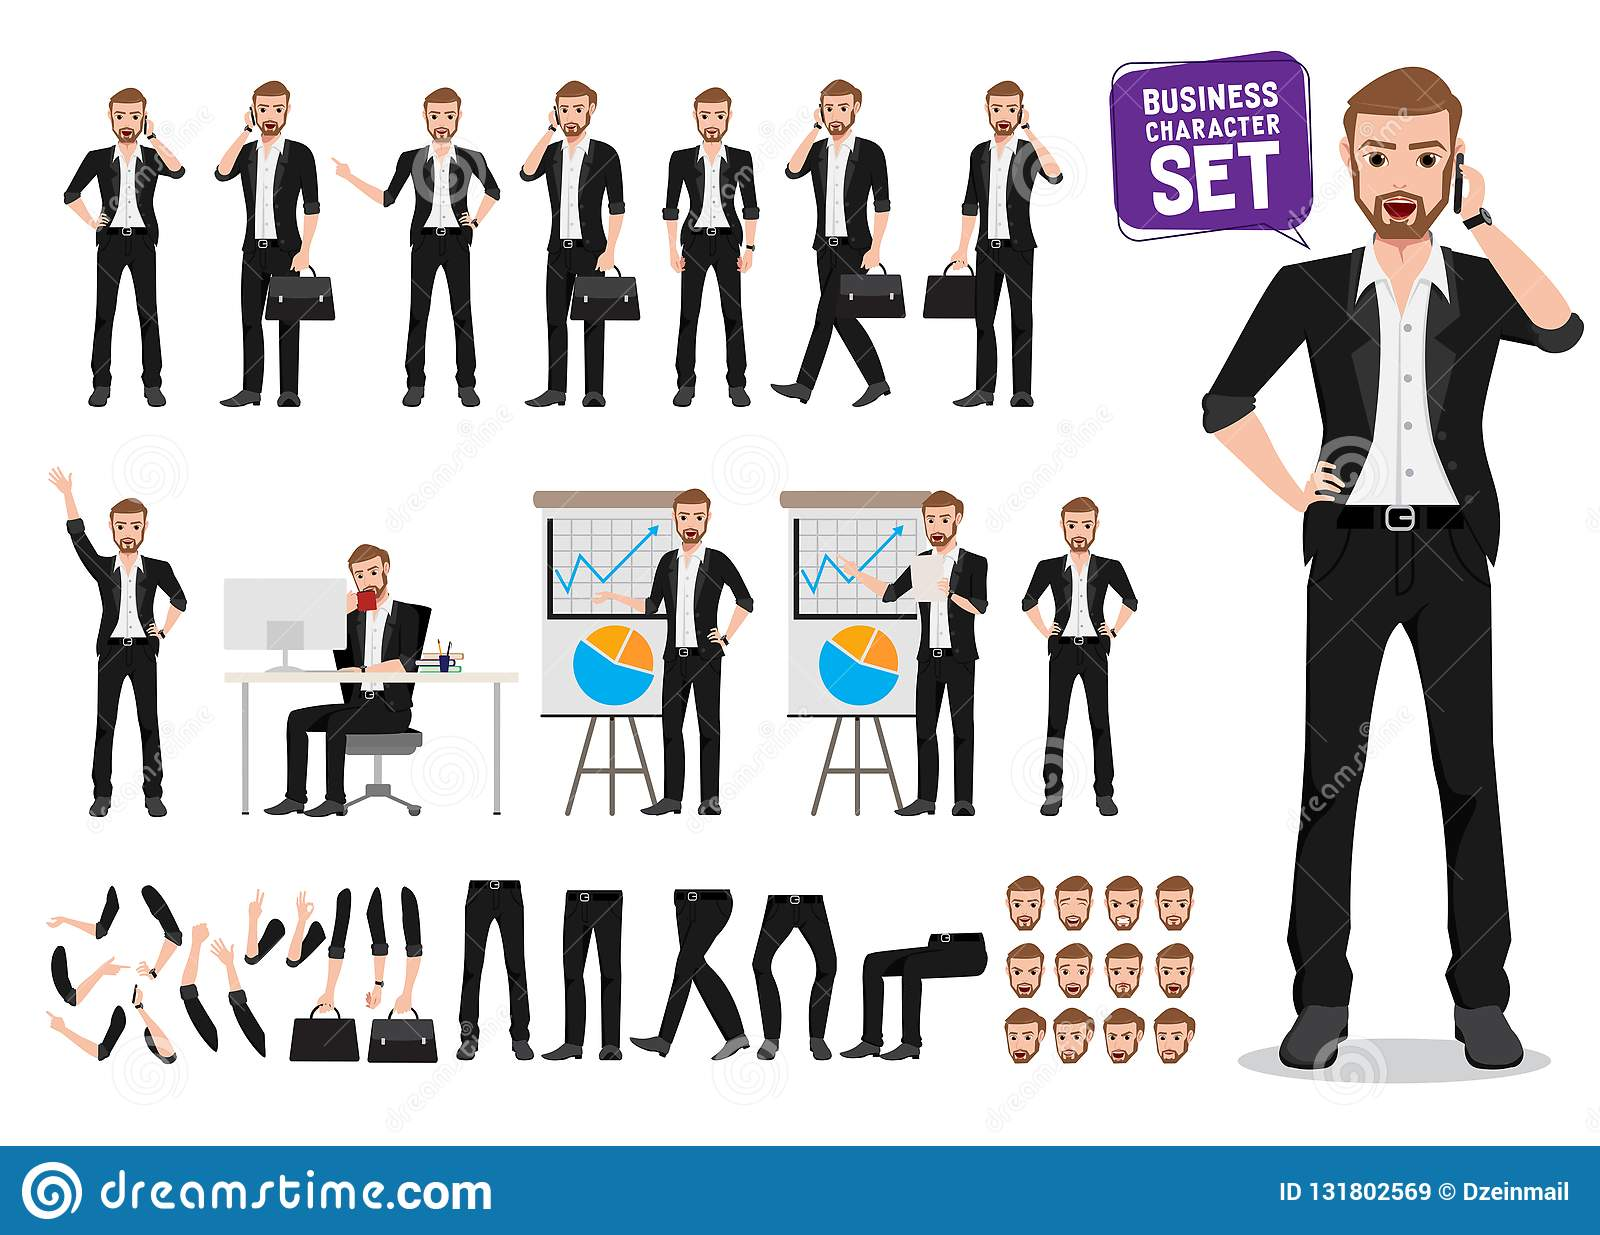 Businessman vector character set. Male business person cartoon character creation